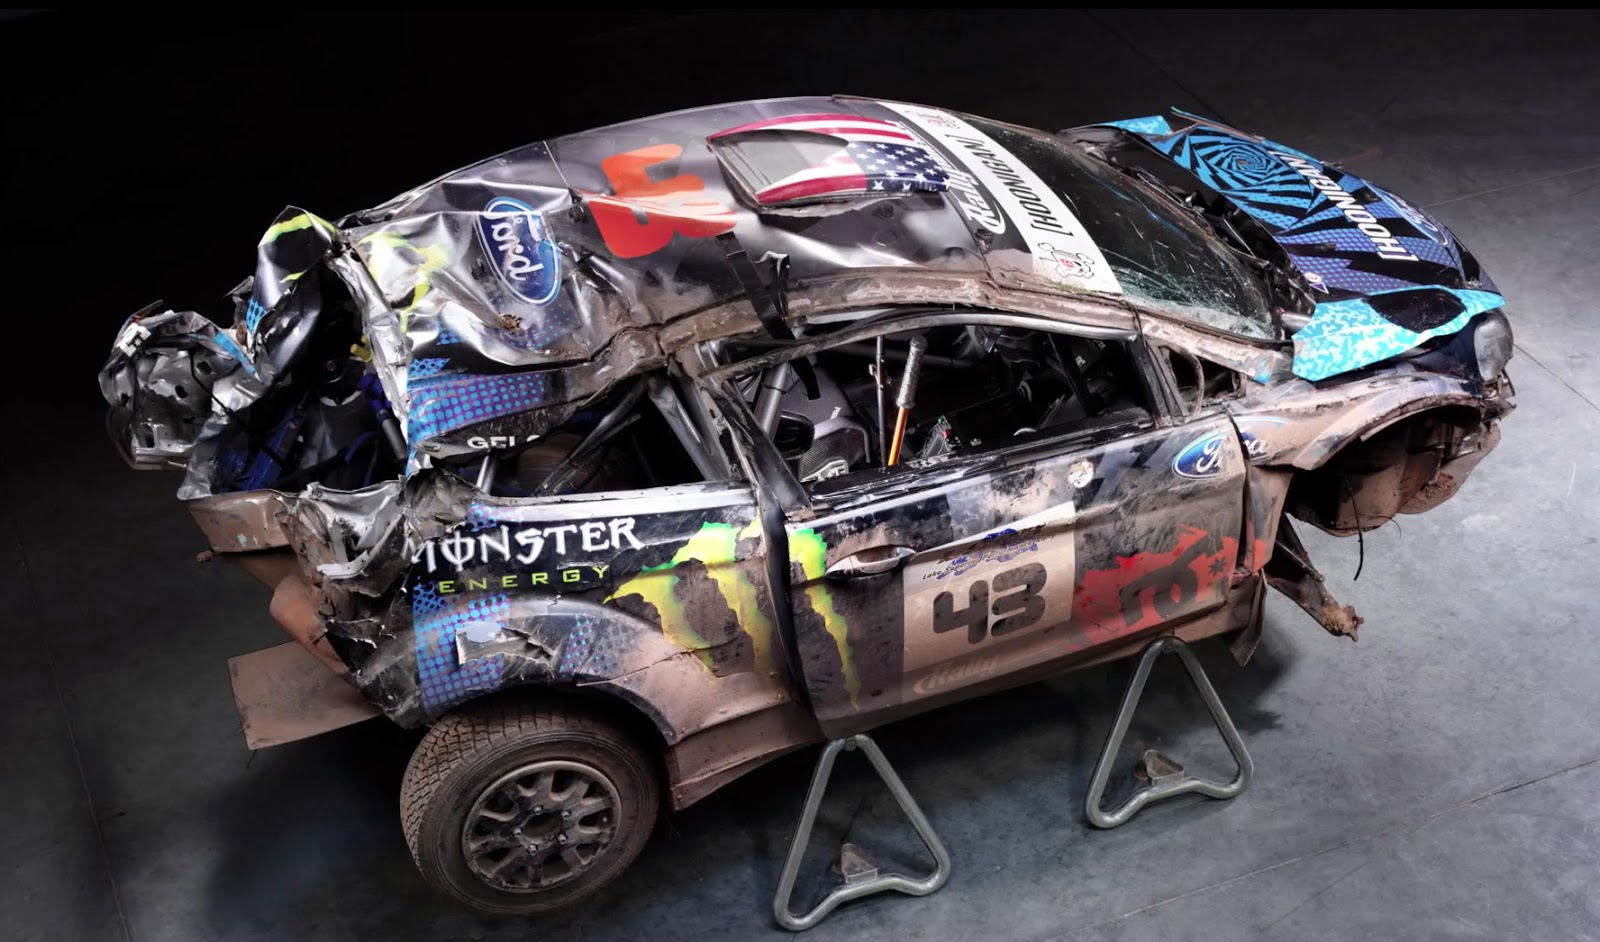 Ford Fiesta Rally Car Ken Block Accident